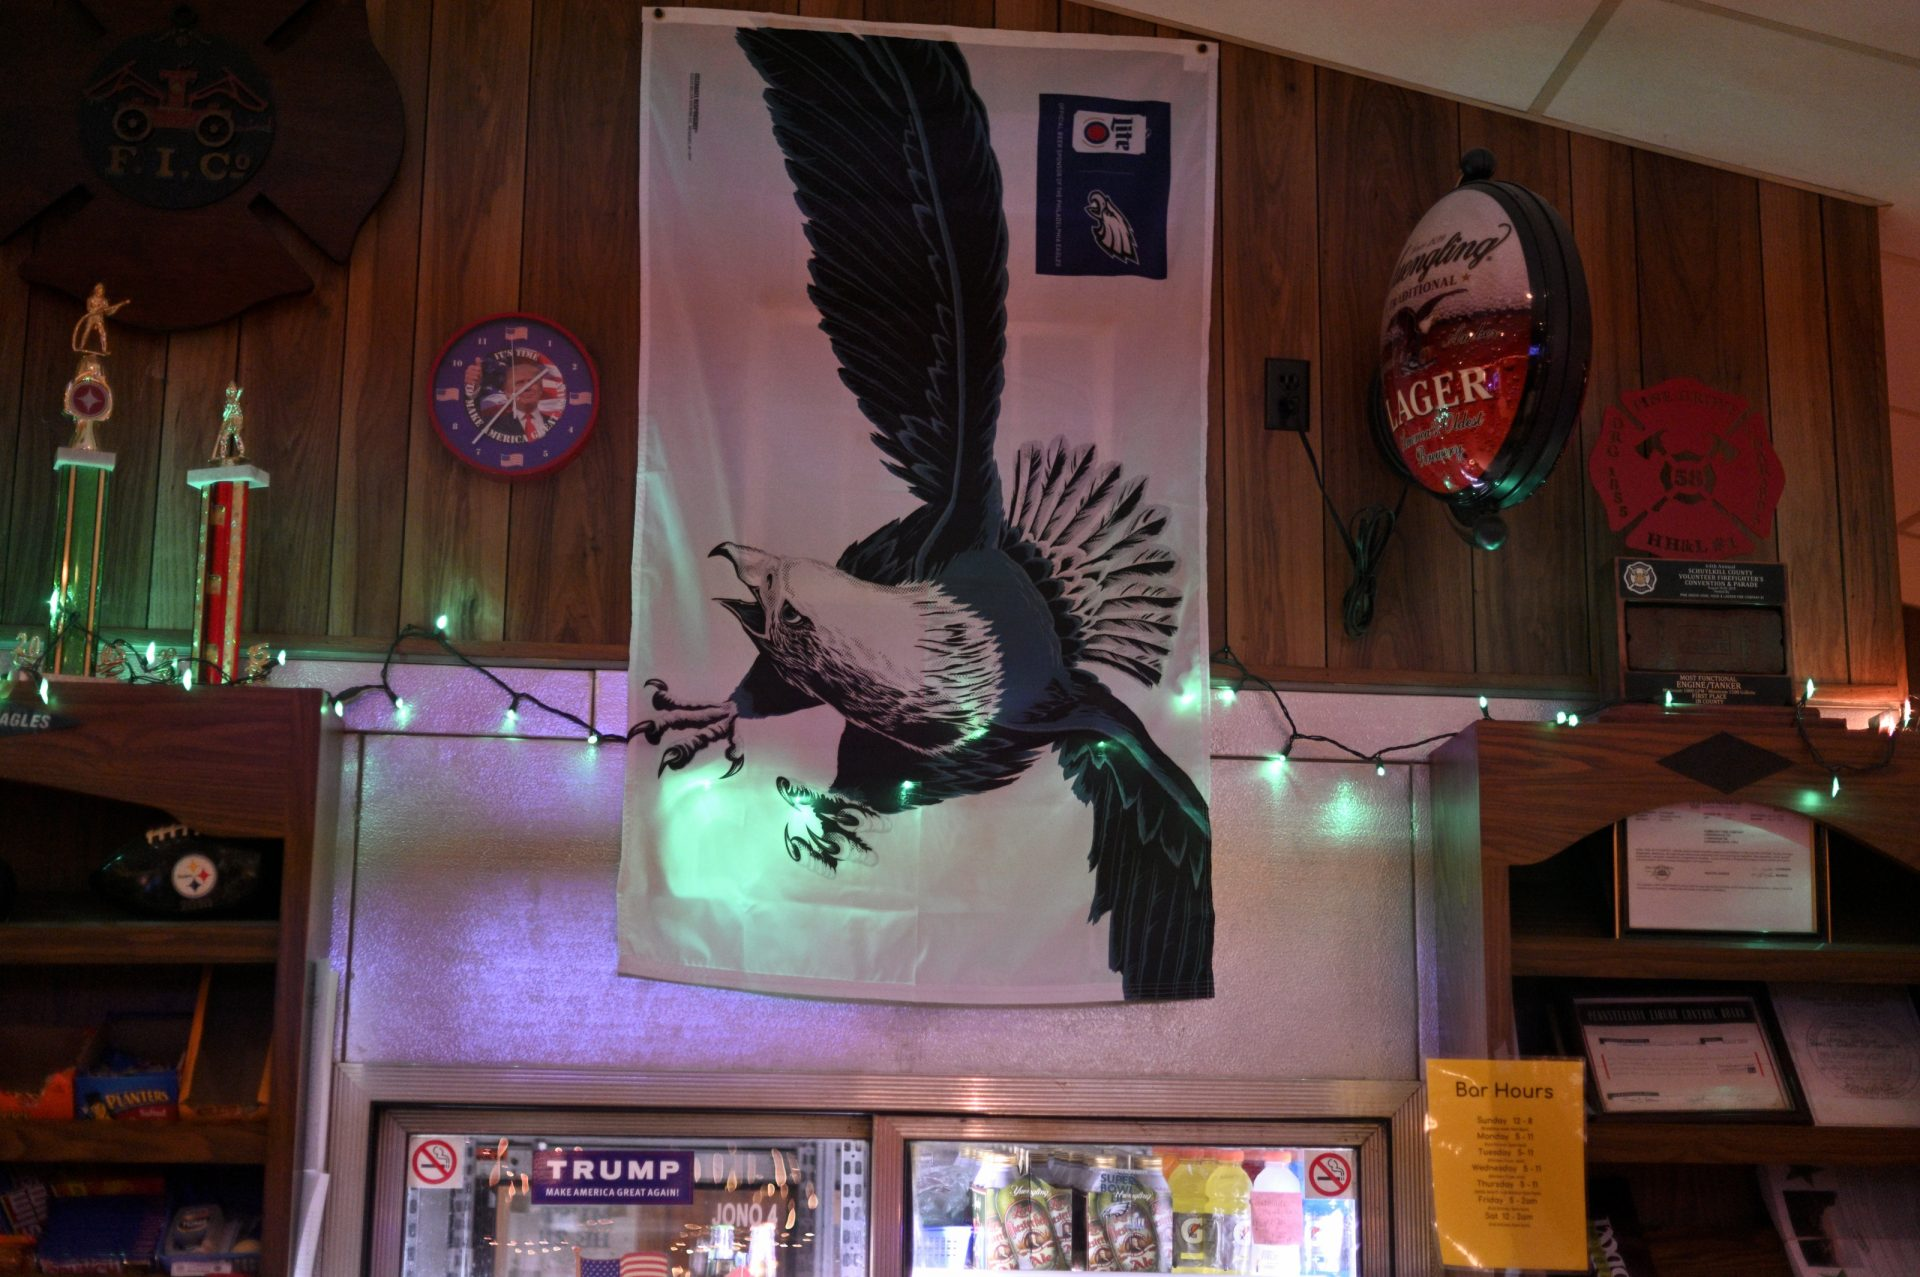 A sticker and clock in suport of President Donald Trump, as well as a large Eagles flag are found behind the bar of the Social Quarters of the Landingville Community Fire Company, in Landingville, PA, on December 15, 2019.